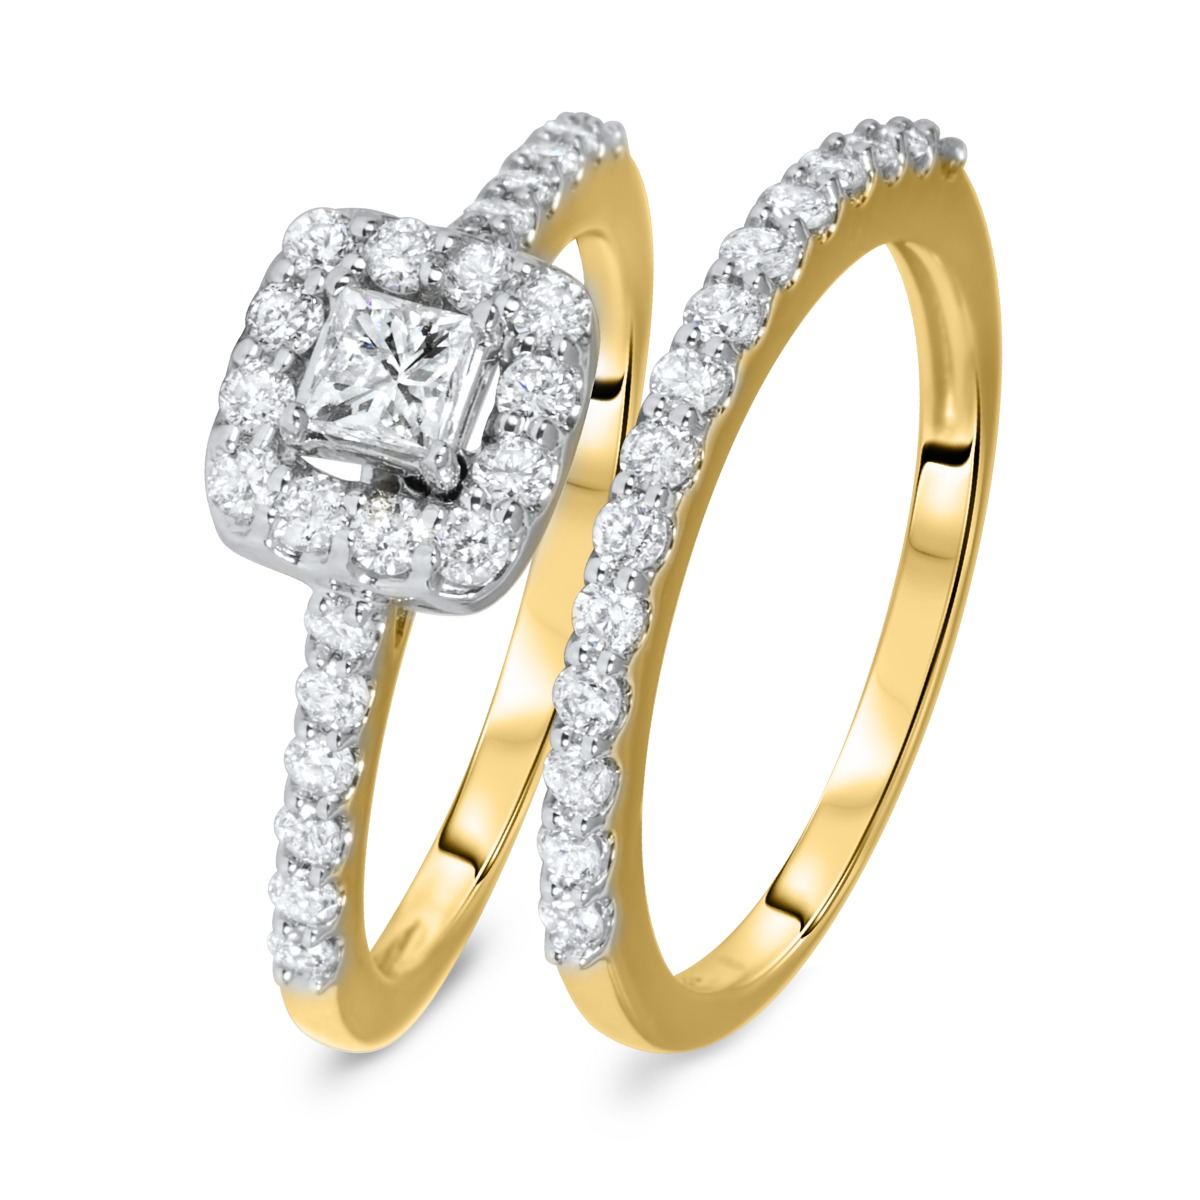 1 CT. T.W. Princess, Round Cut Diamond Ladies Bridal Ring Set 14K Yellow Gold